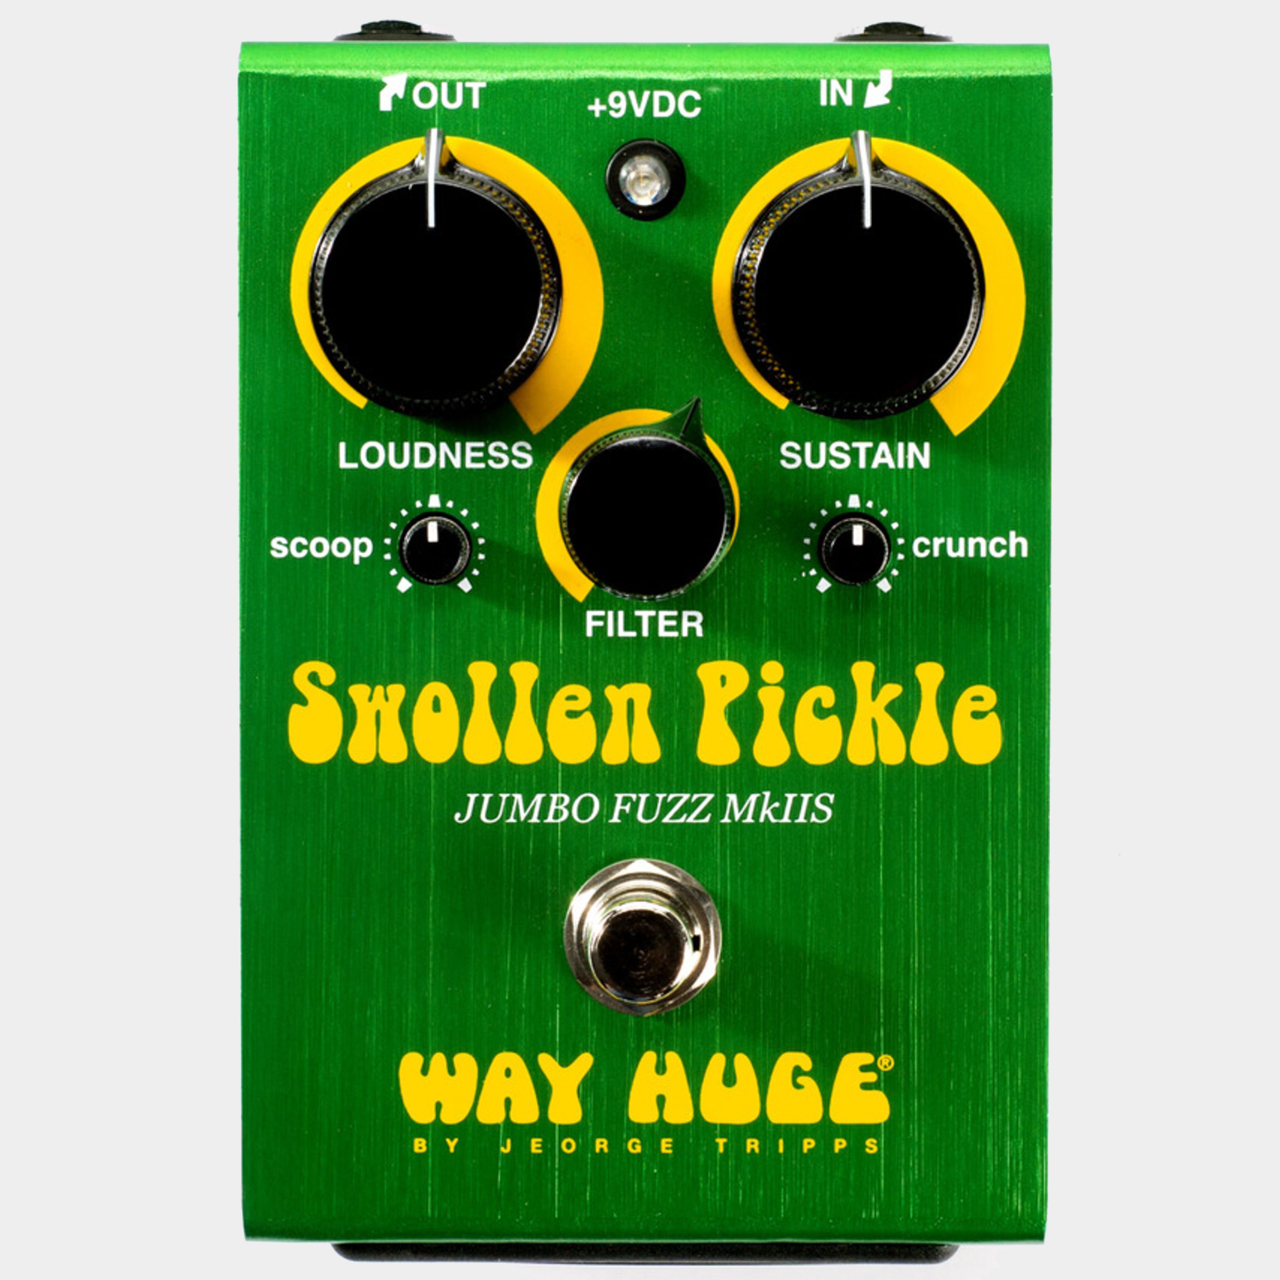 WAY HUGE Swollen Pickle Jumbo Fuzz Mk IIS